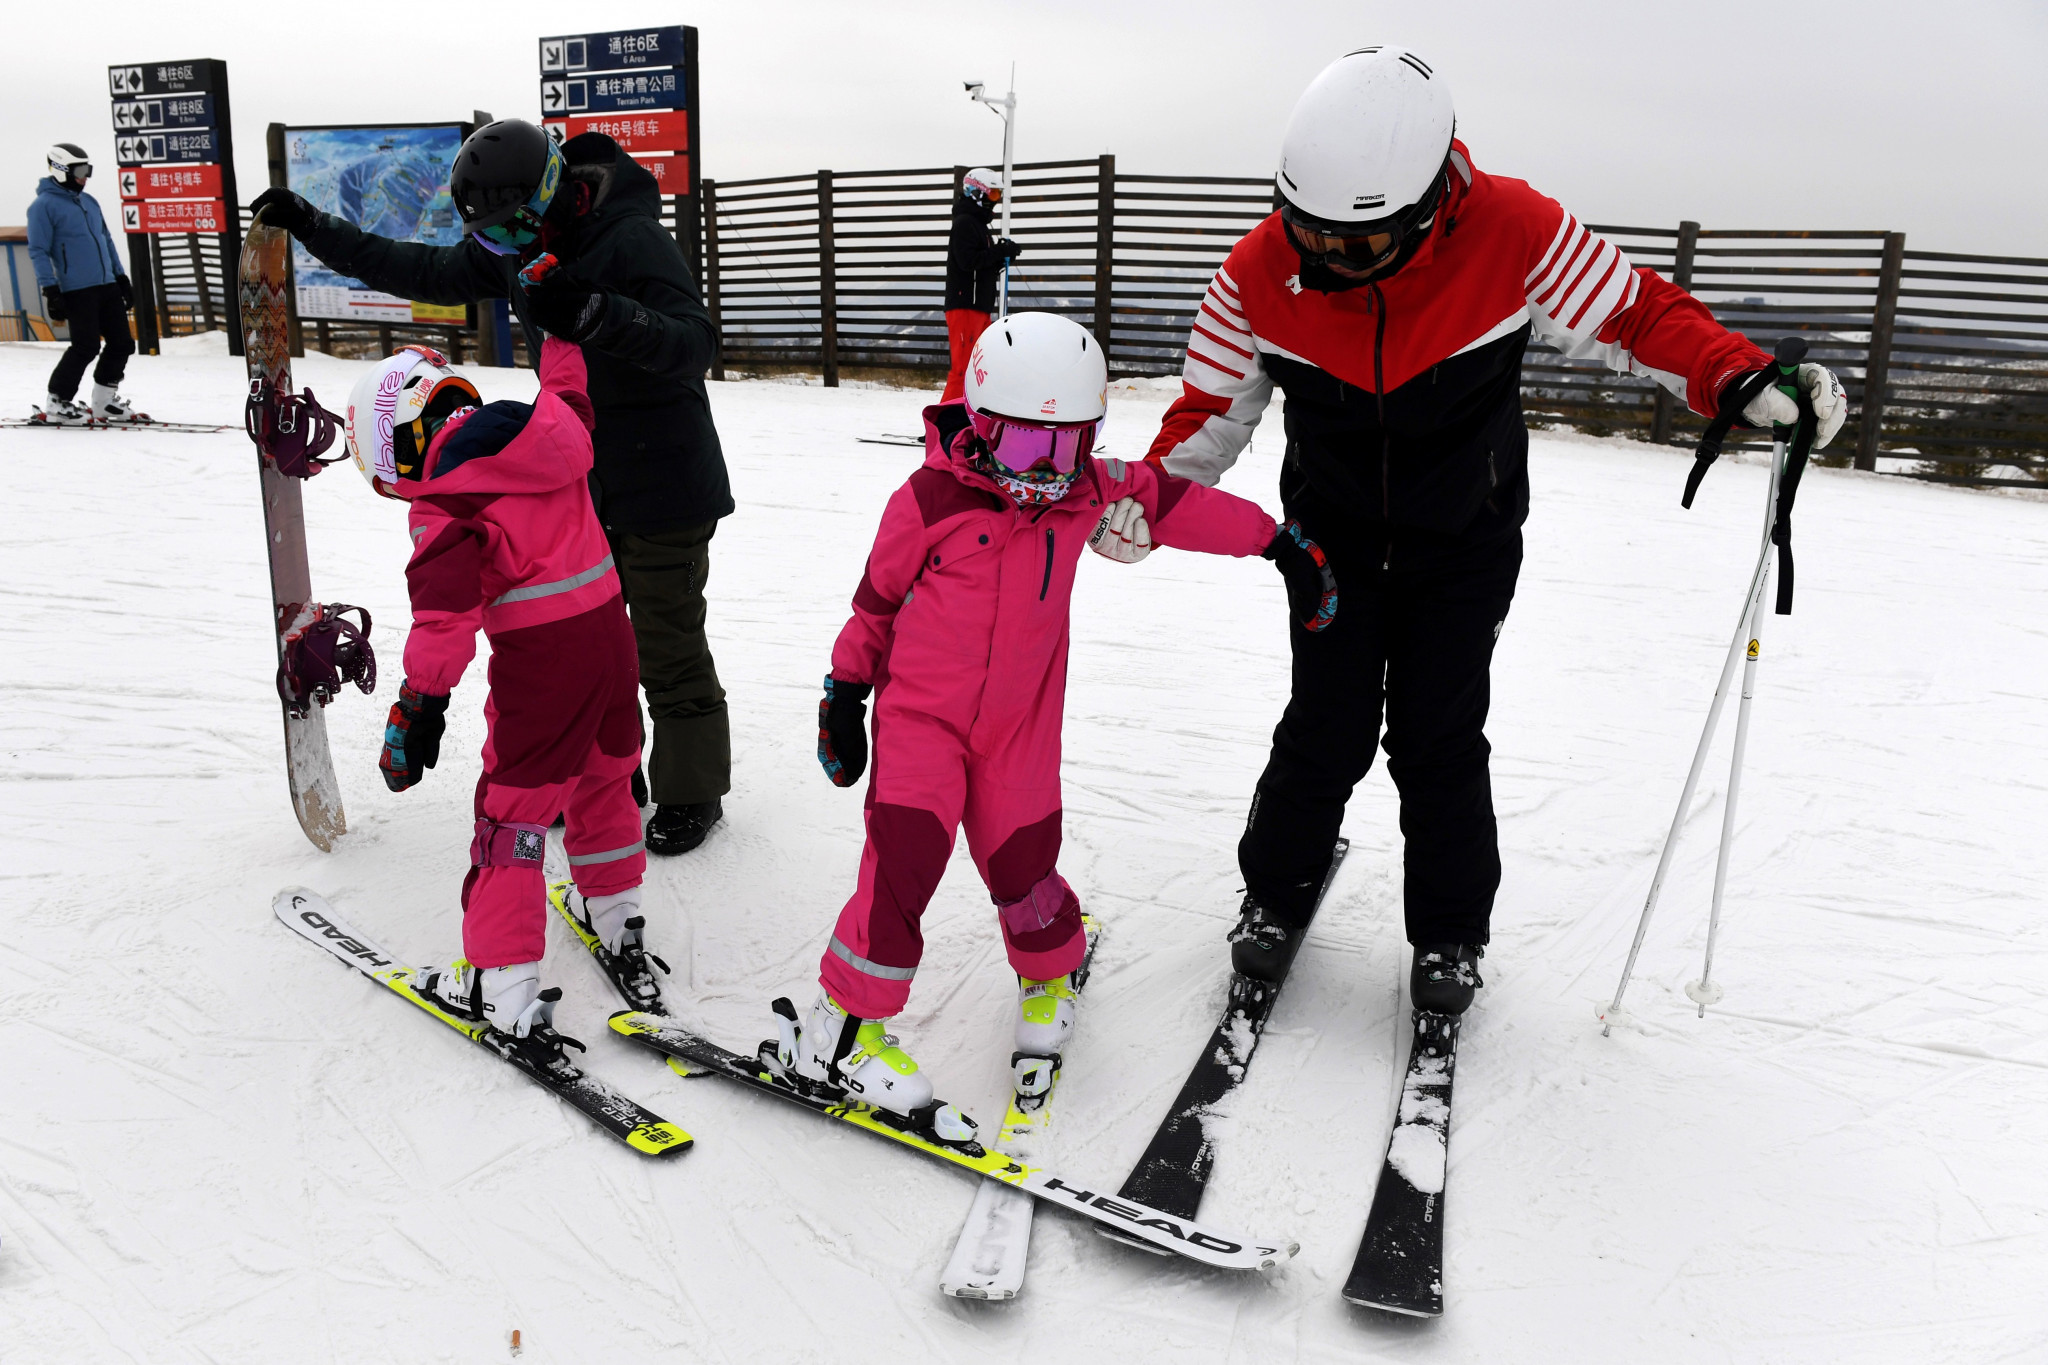 European ski school opens academy in China to capitalise on Beijing 2022 potential